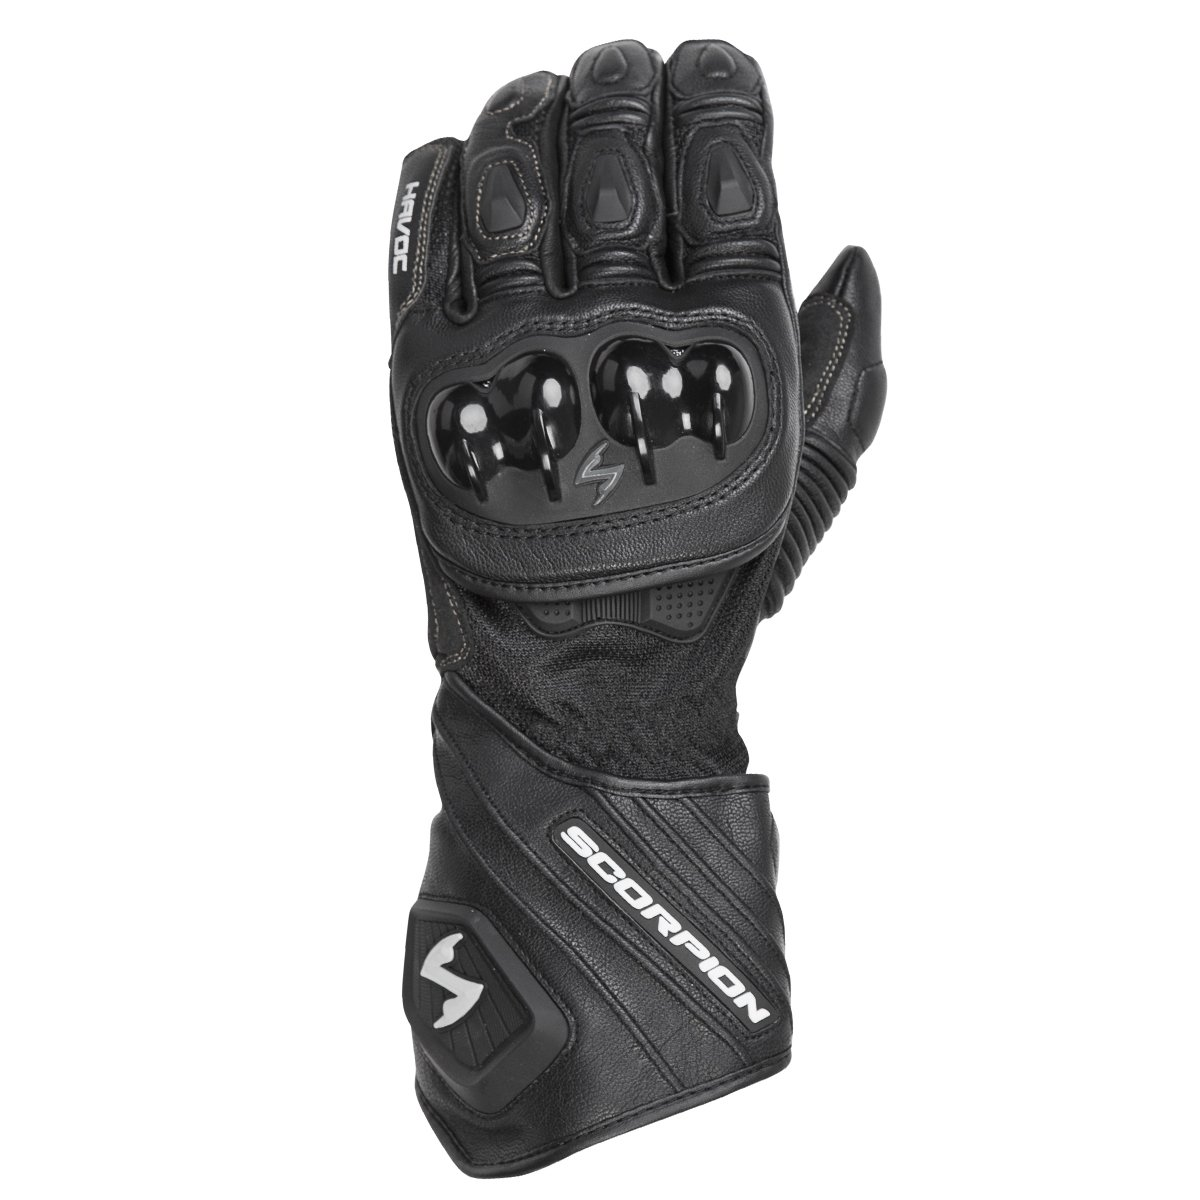 Scorpion Havoc Sport Motorcycle Glove (Black, Large)